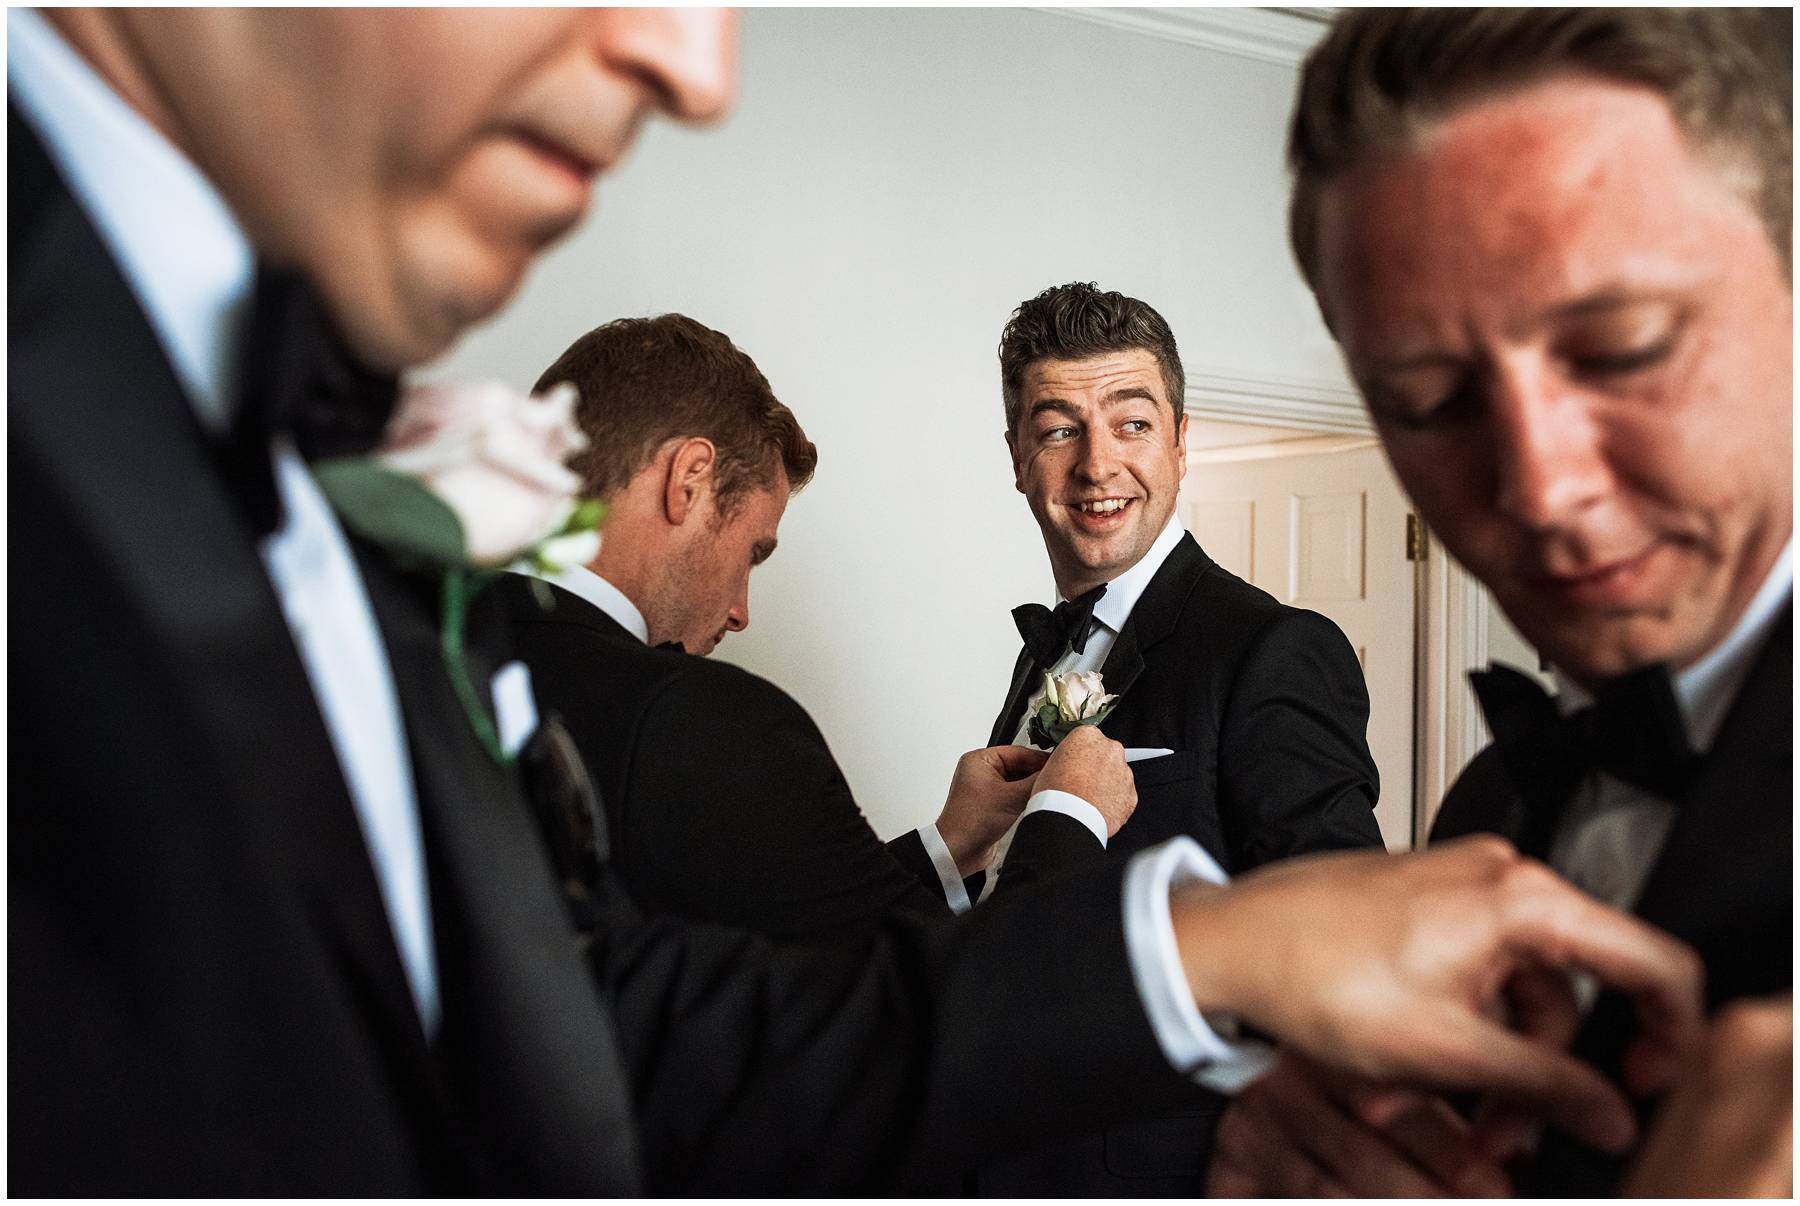 groom getting ready for wedding at Blenheim Palace